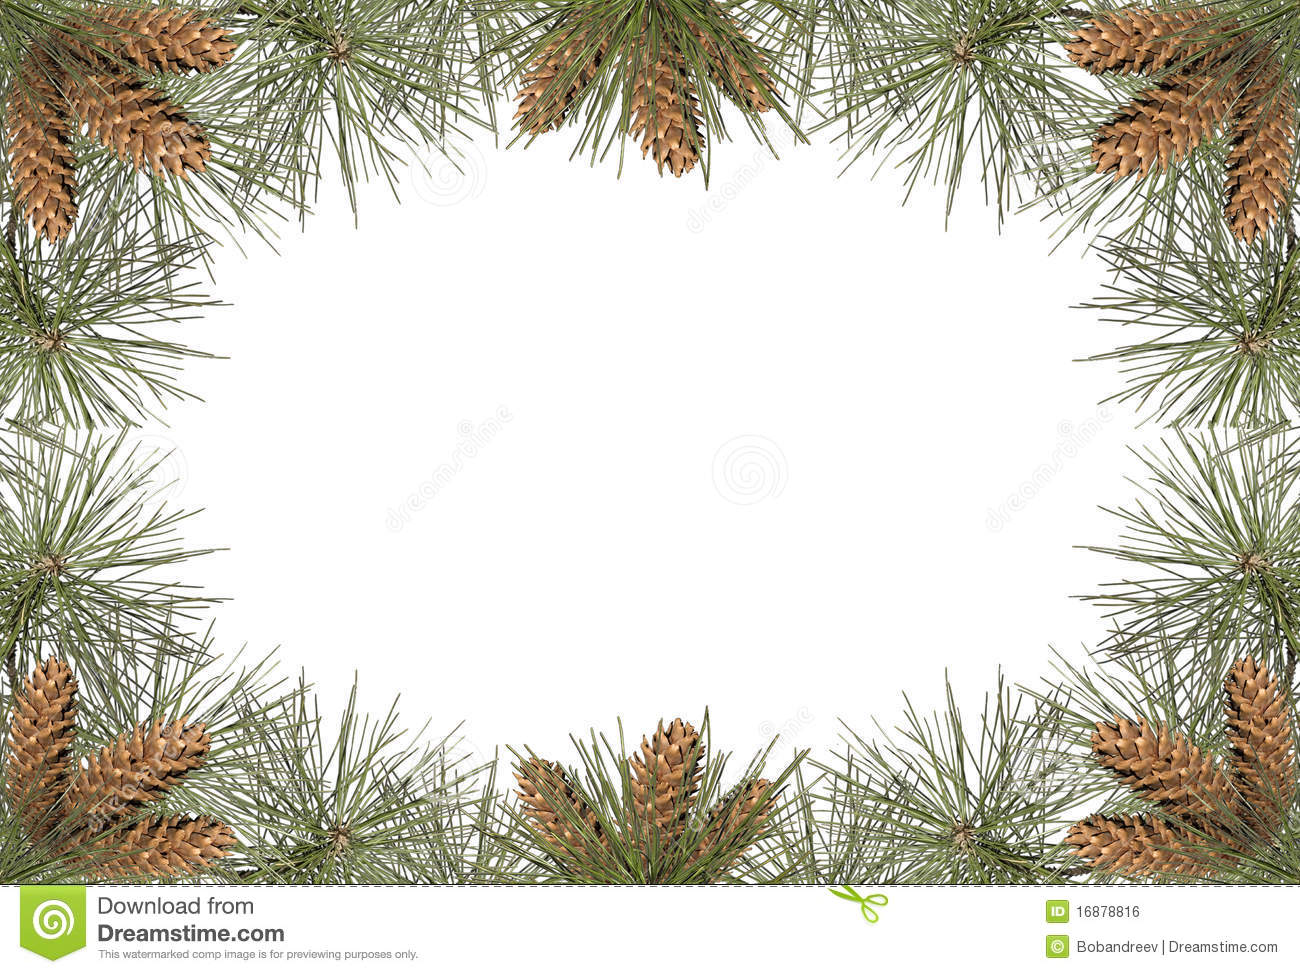 Woodsy Christmas Trees